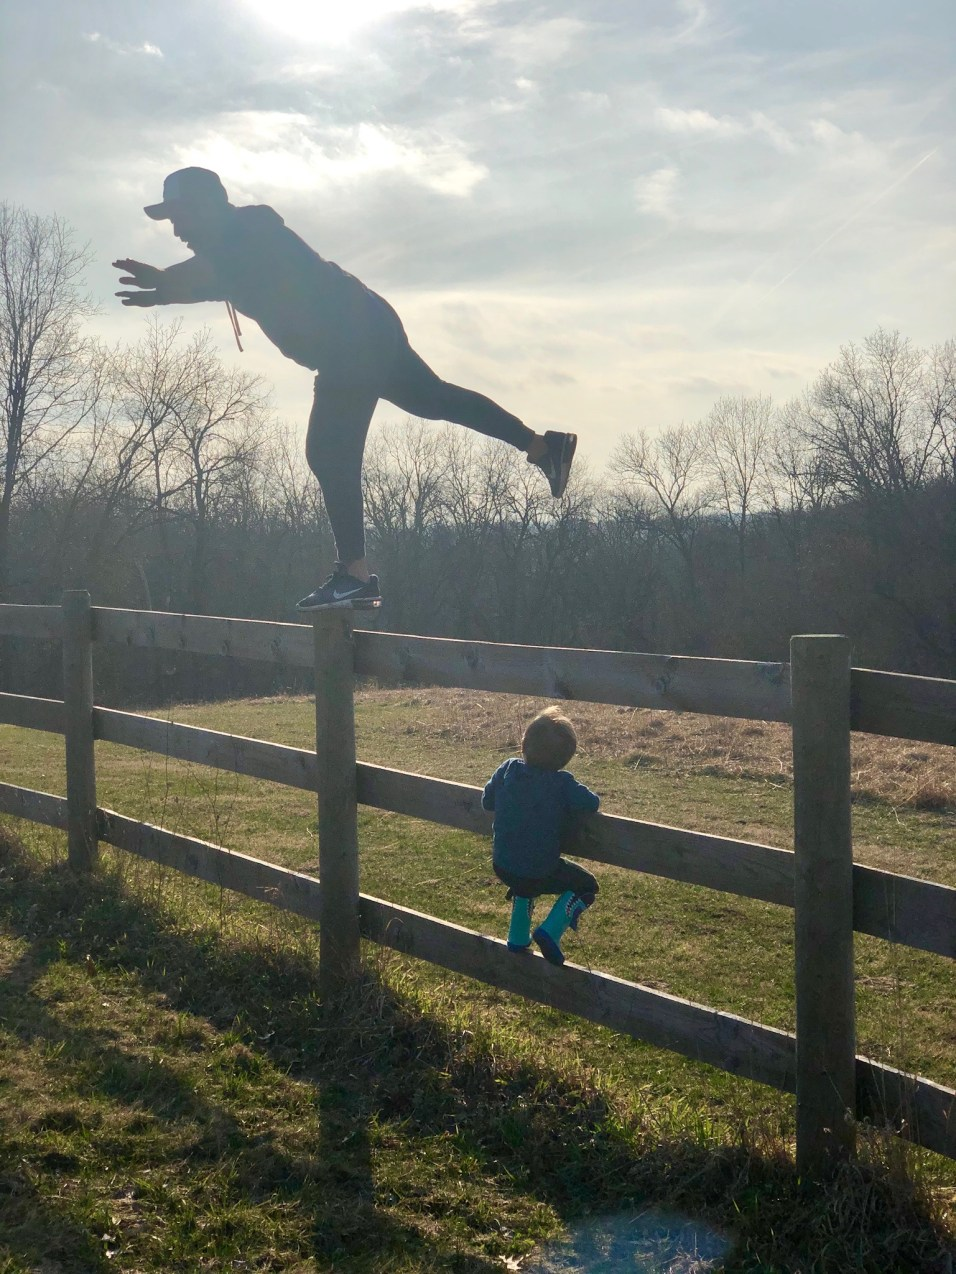 Tee having fun with his son at their grandparents' farm